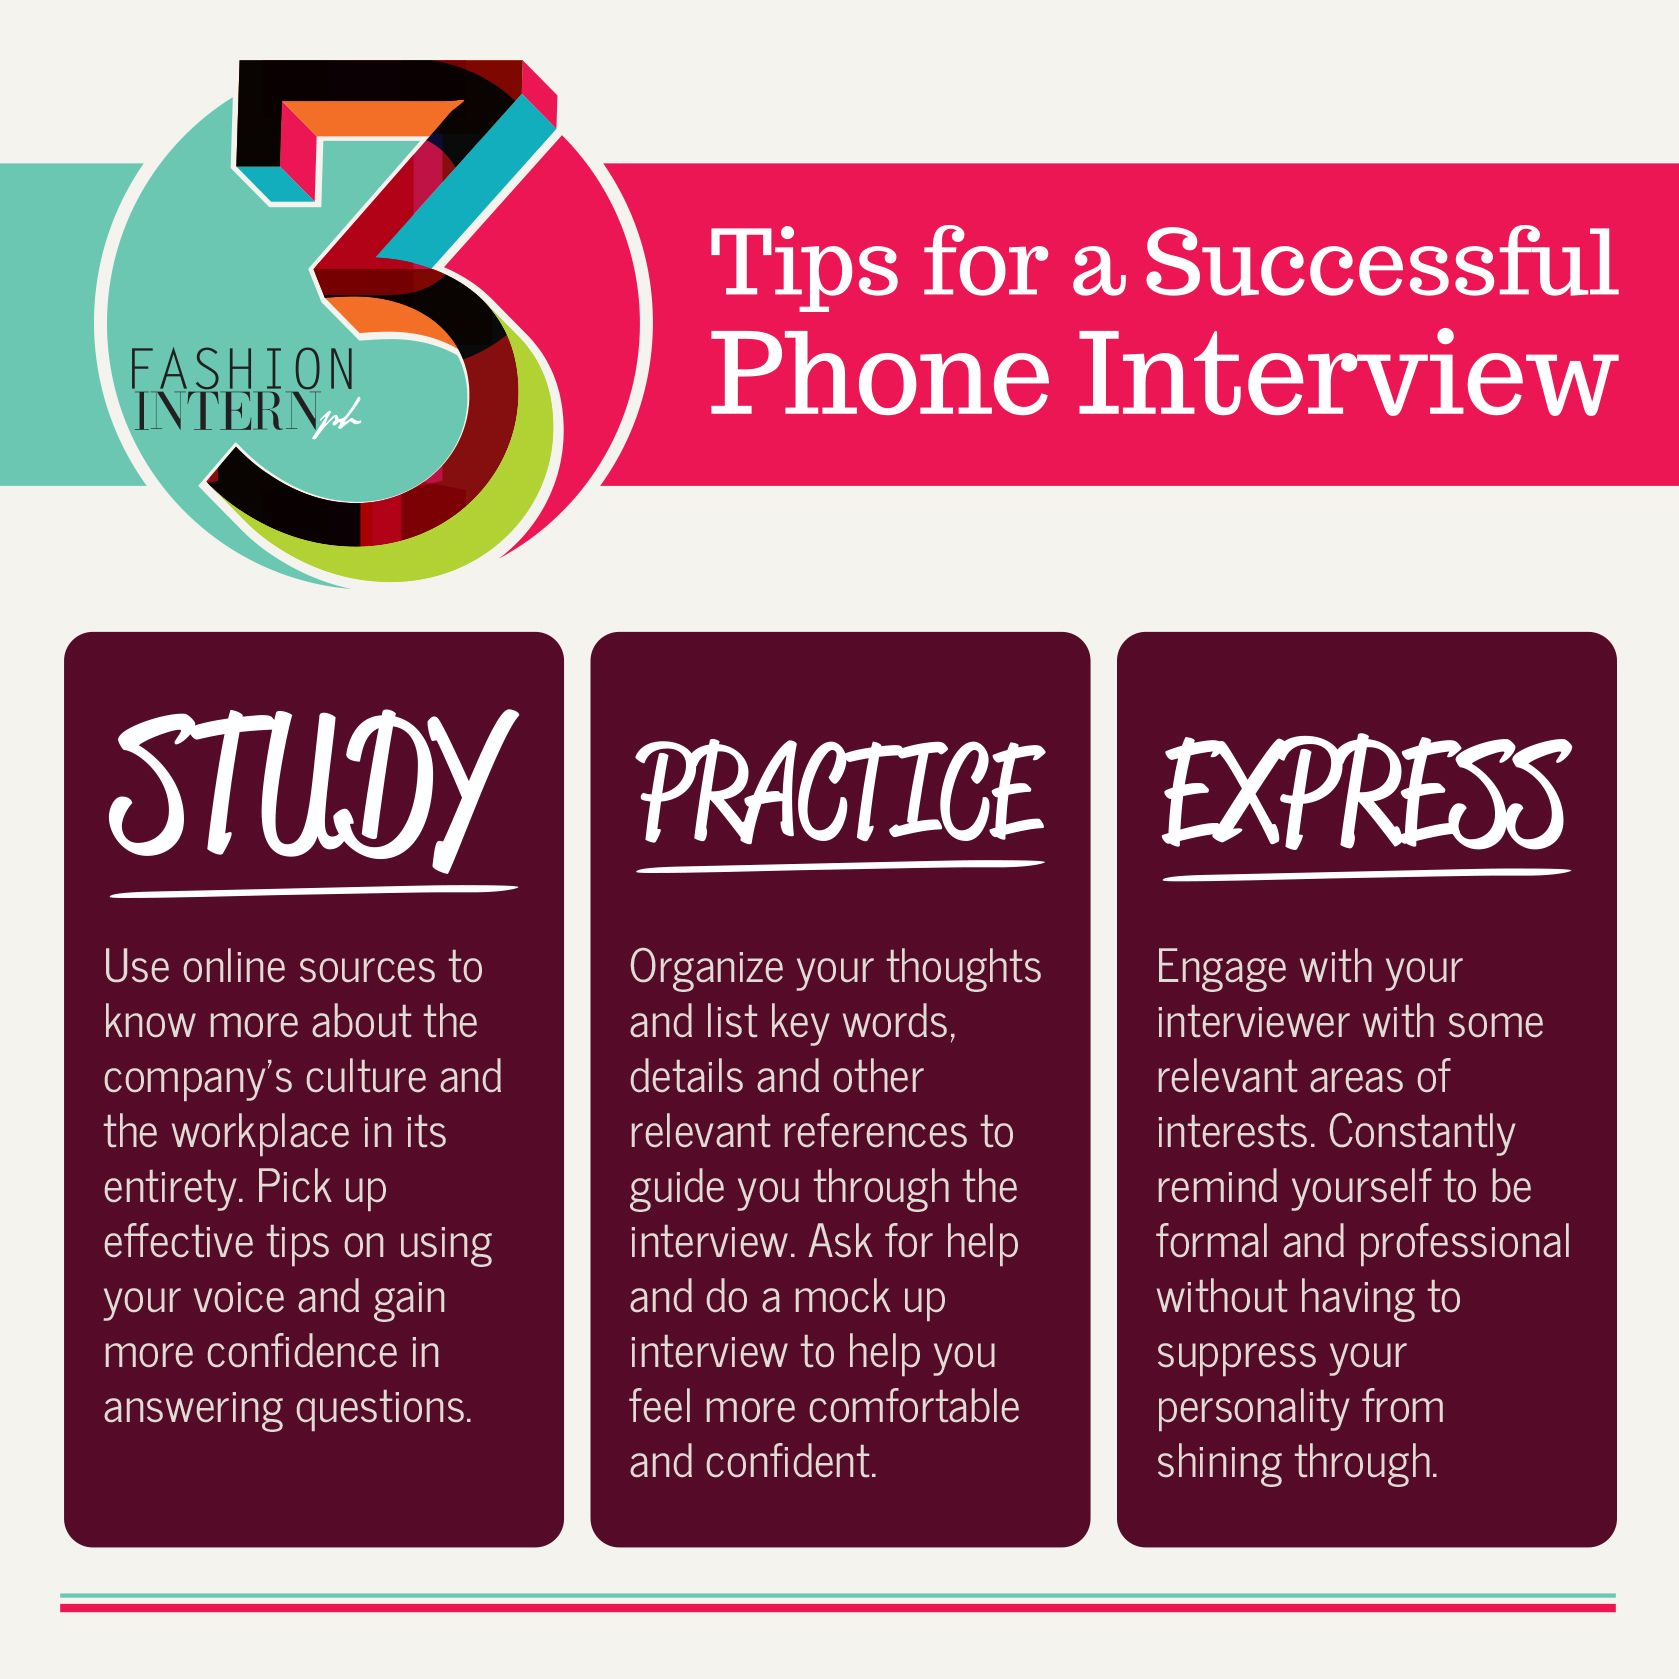 infographic tips for a successful phone interview tips career infographic 3 tips for a successful phone interview tips career